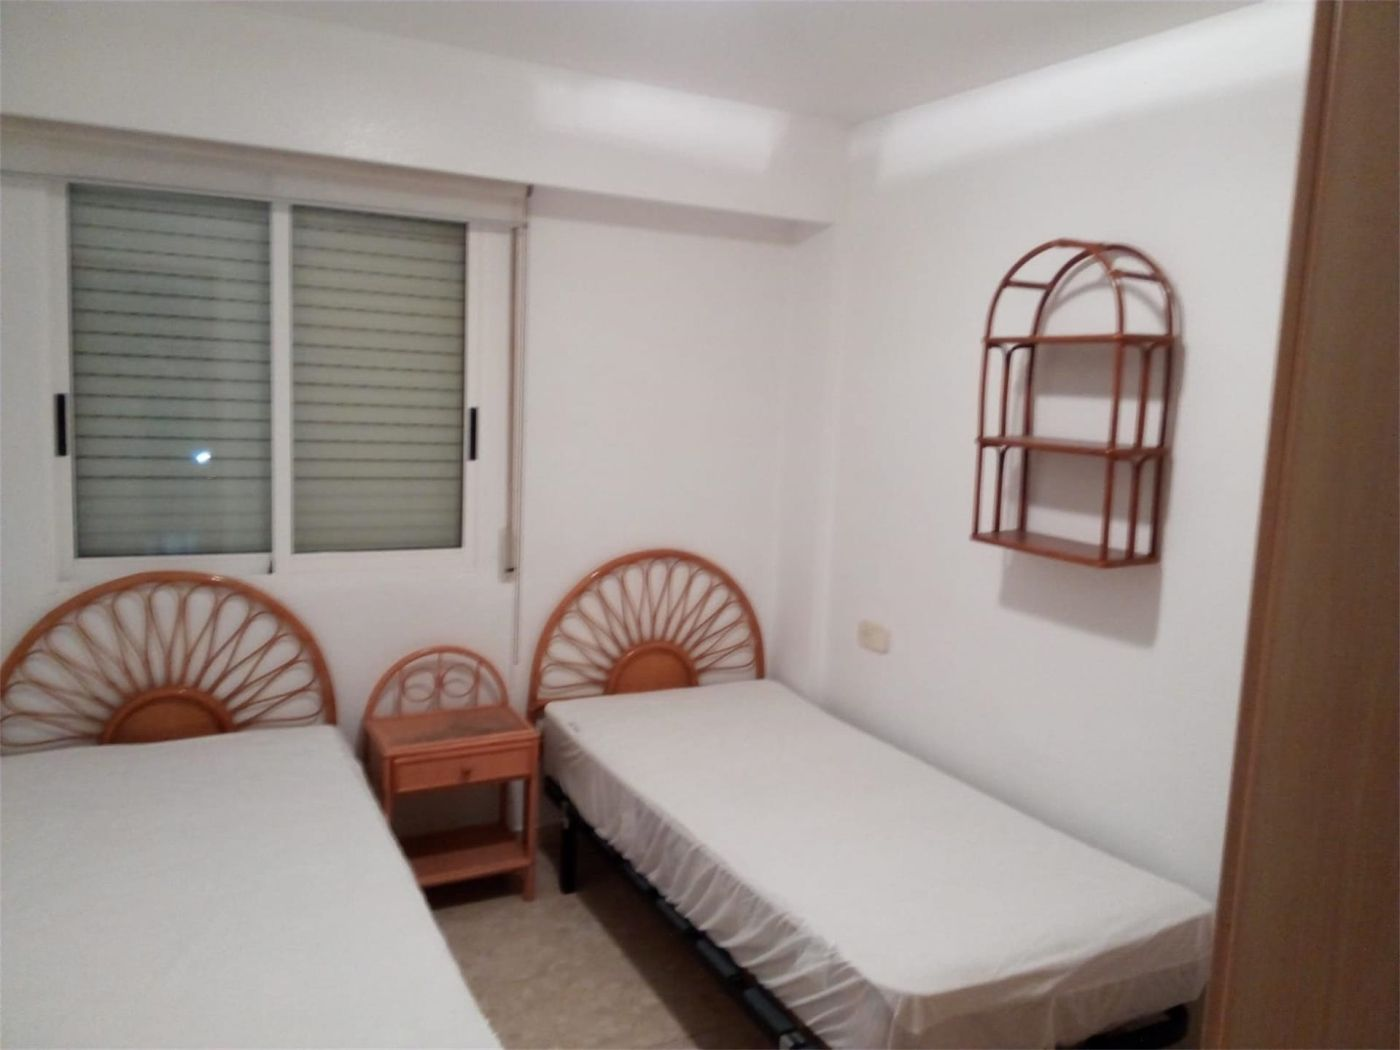 Rent Flat in Calle rápita, 29. Playa de gandia